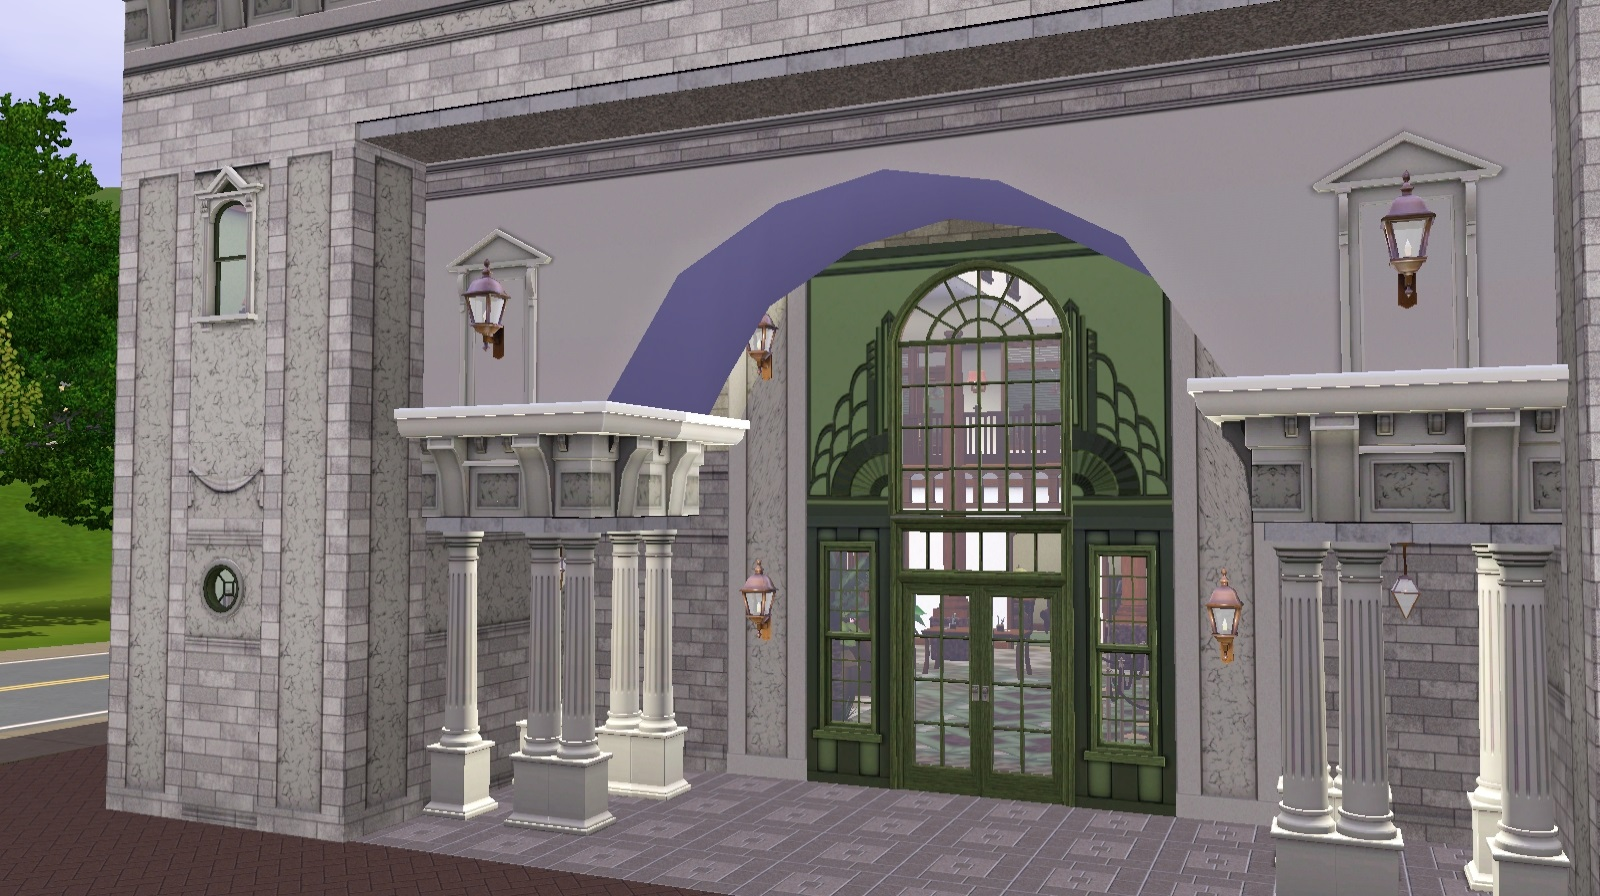 Sims National Bank by cutsocks